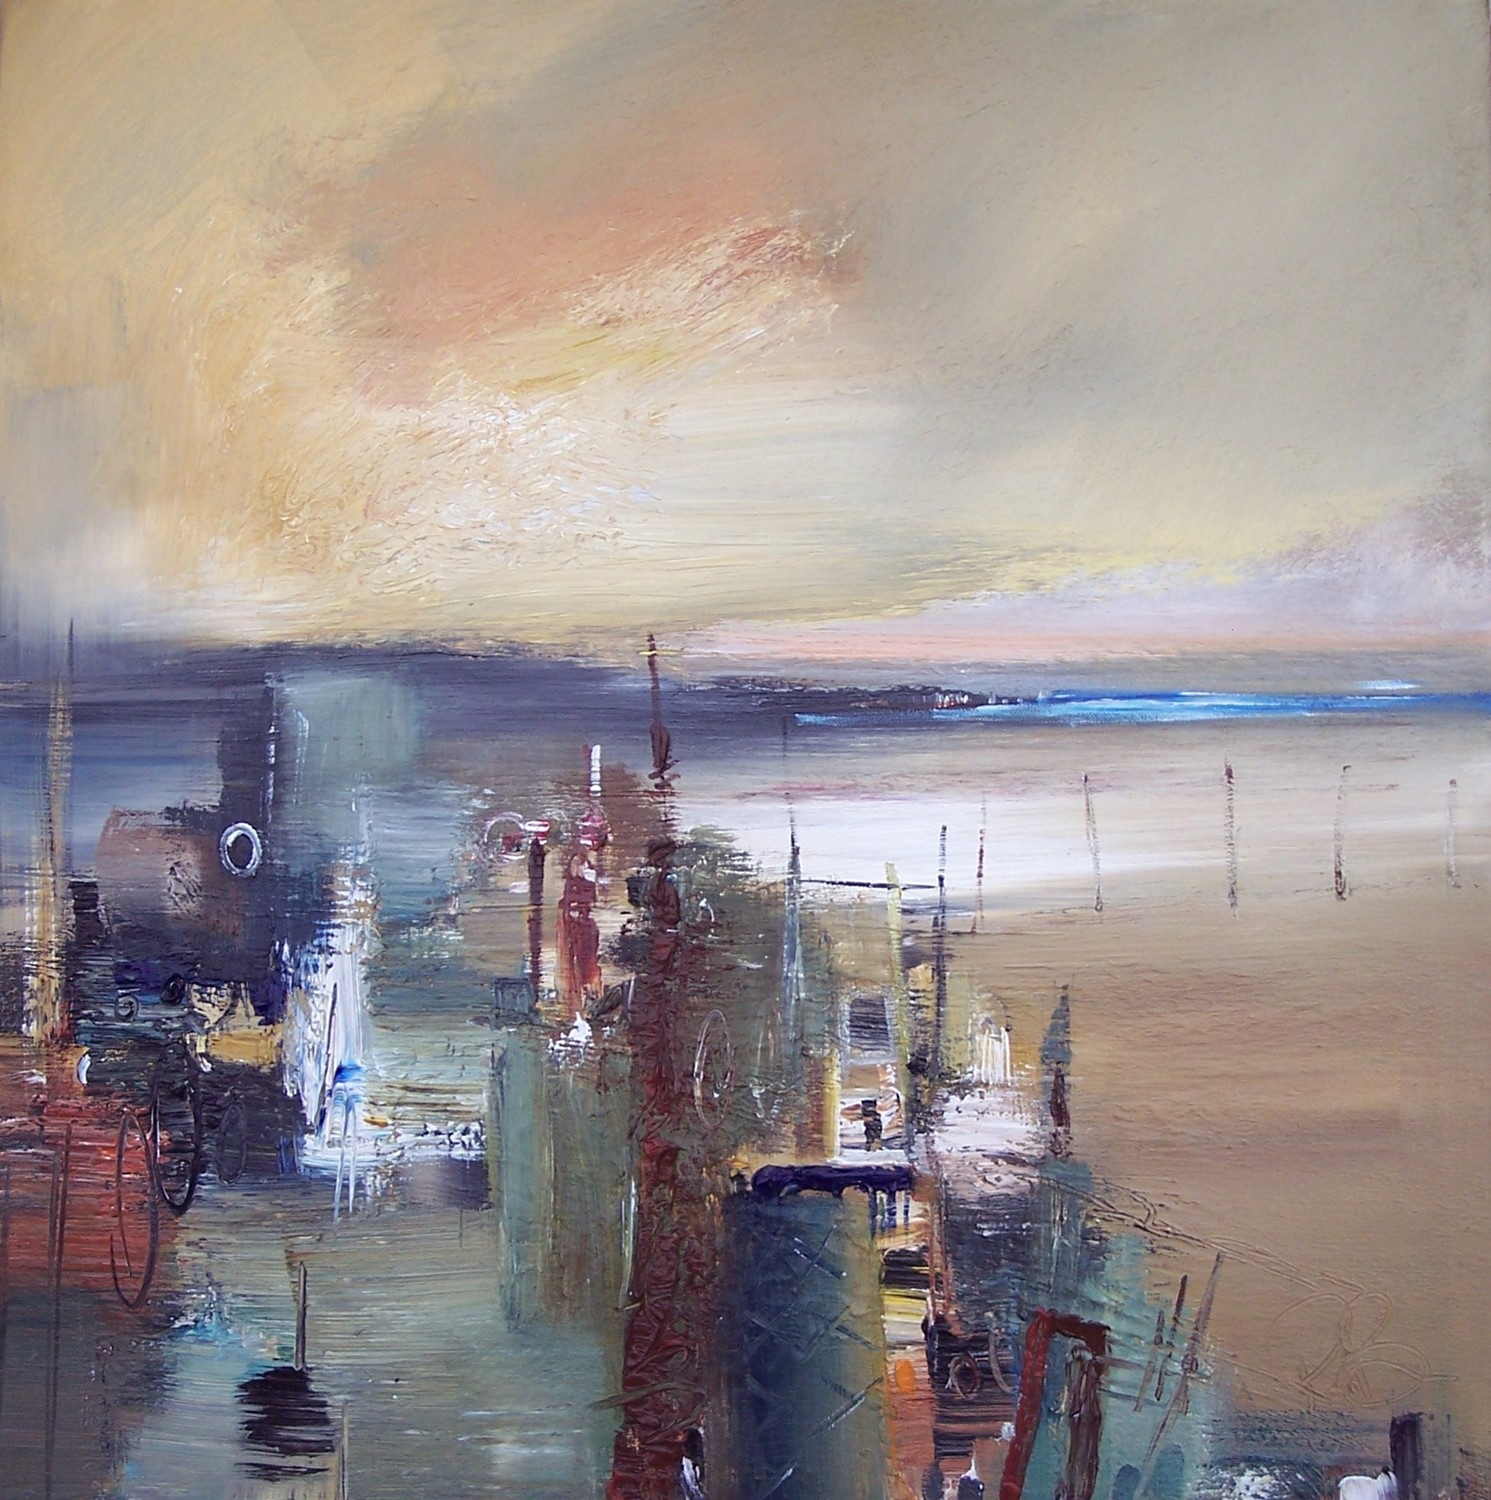 'Waiting at the Quay' by artist Rosanne Barr